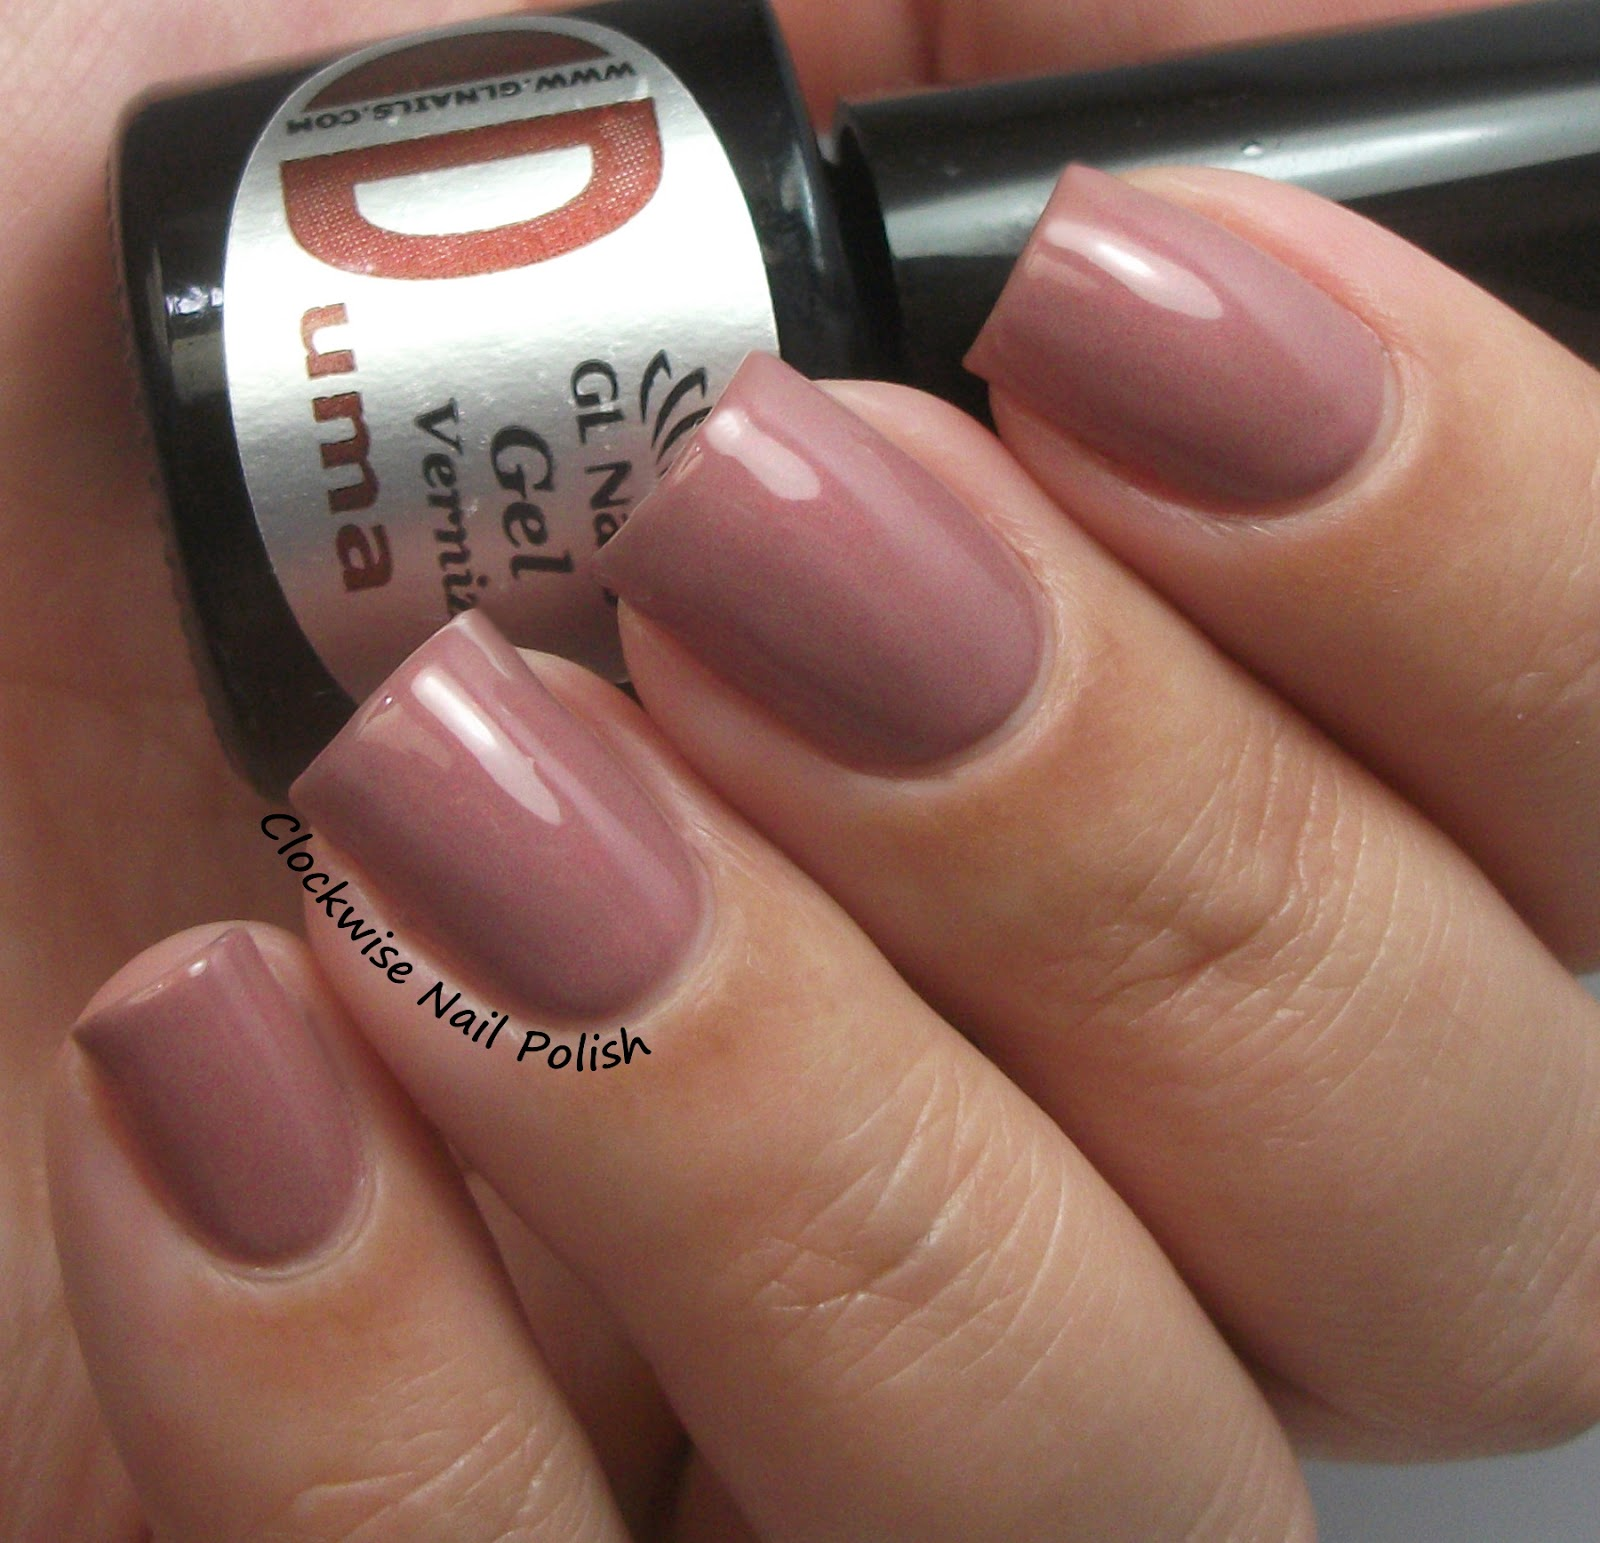 The Clockwise Nail Polish Gl Nails Duma Gel Review